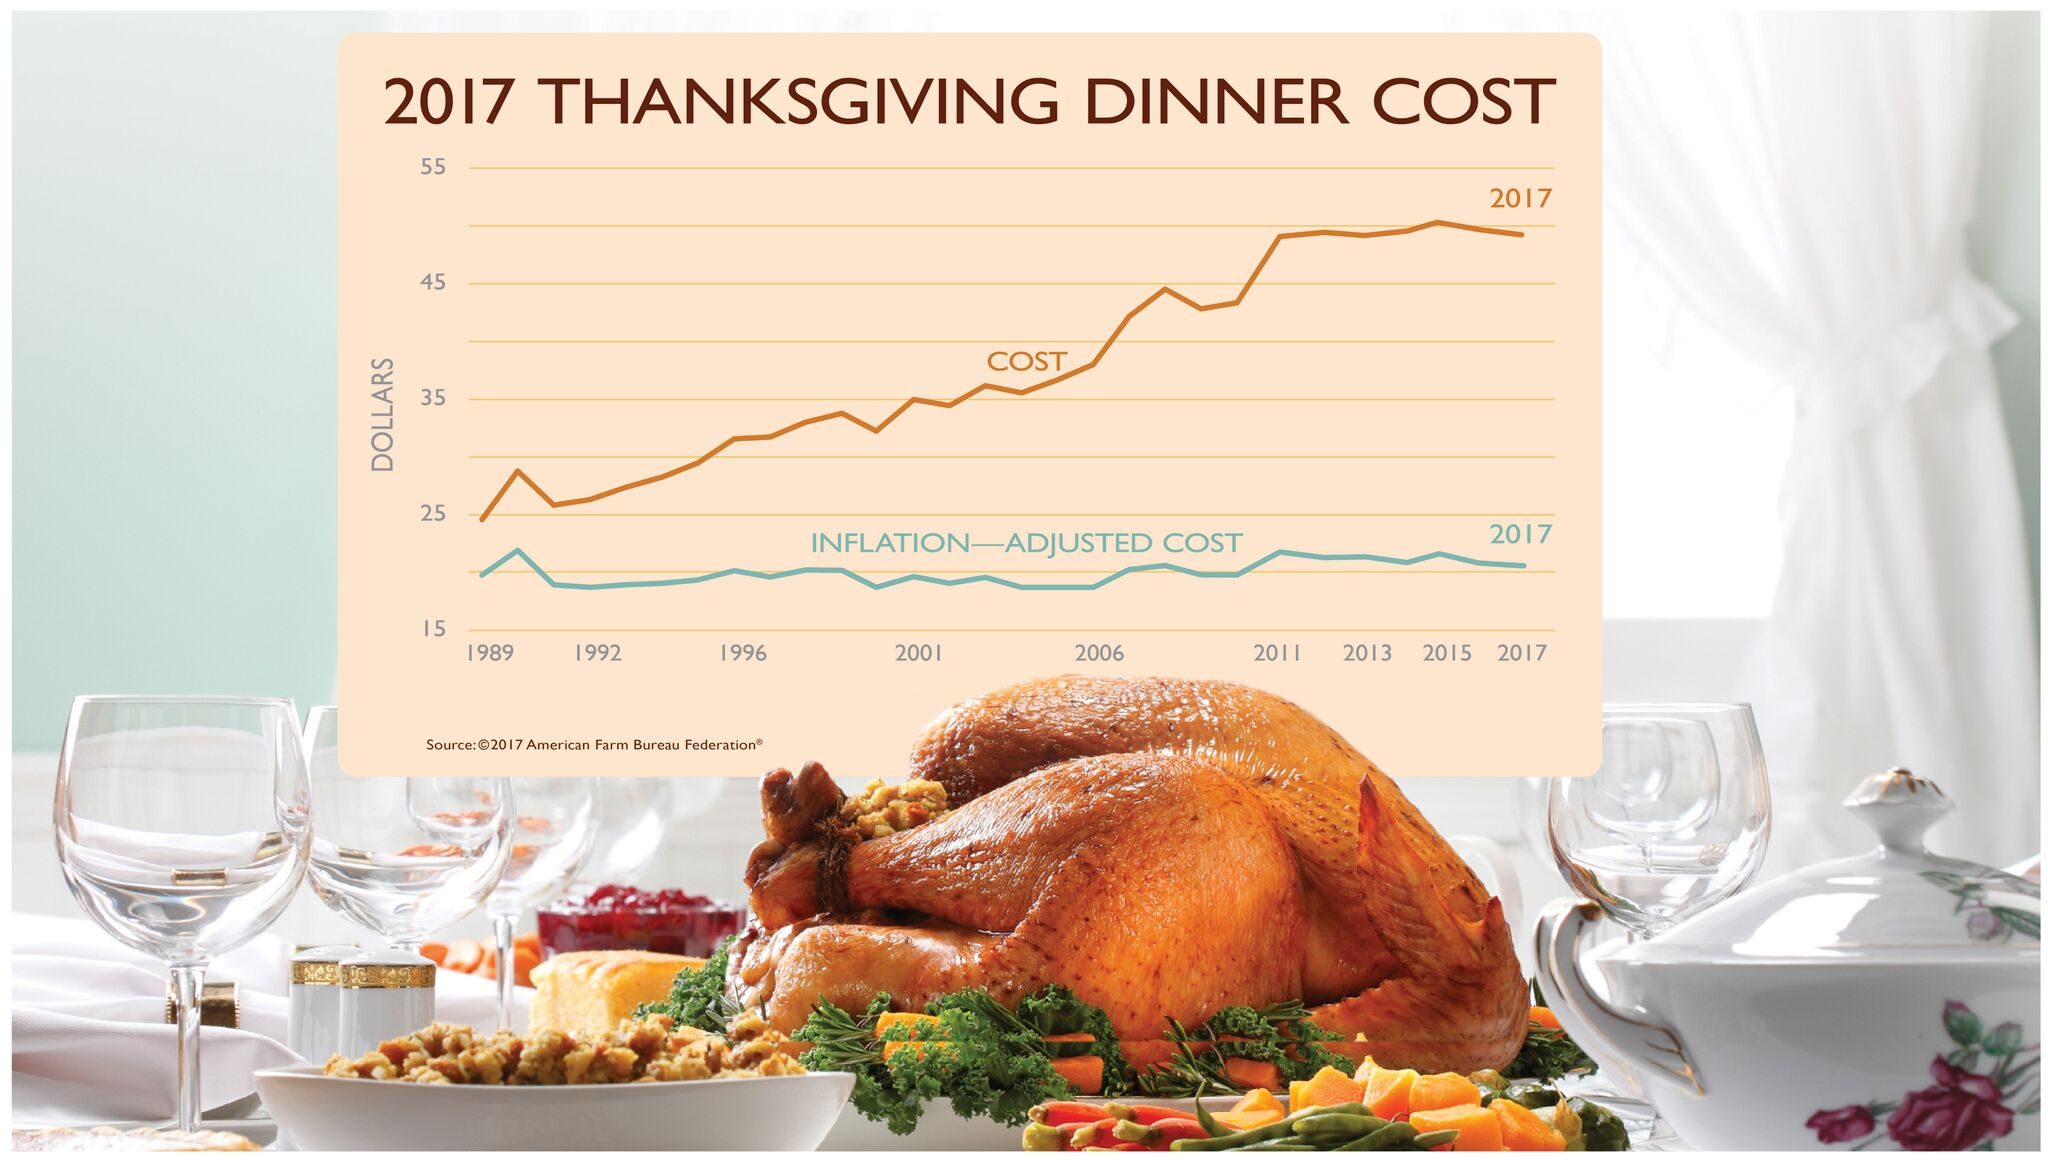 Lowest Thanksgiving Dinner Cost In Five Years Charlotte